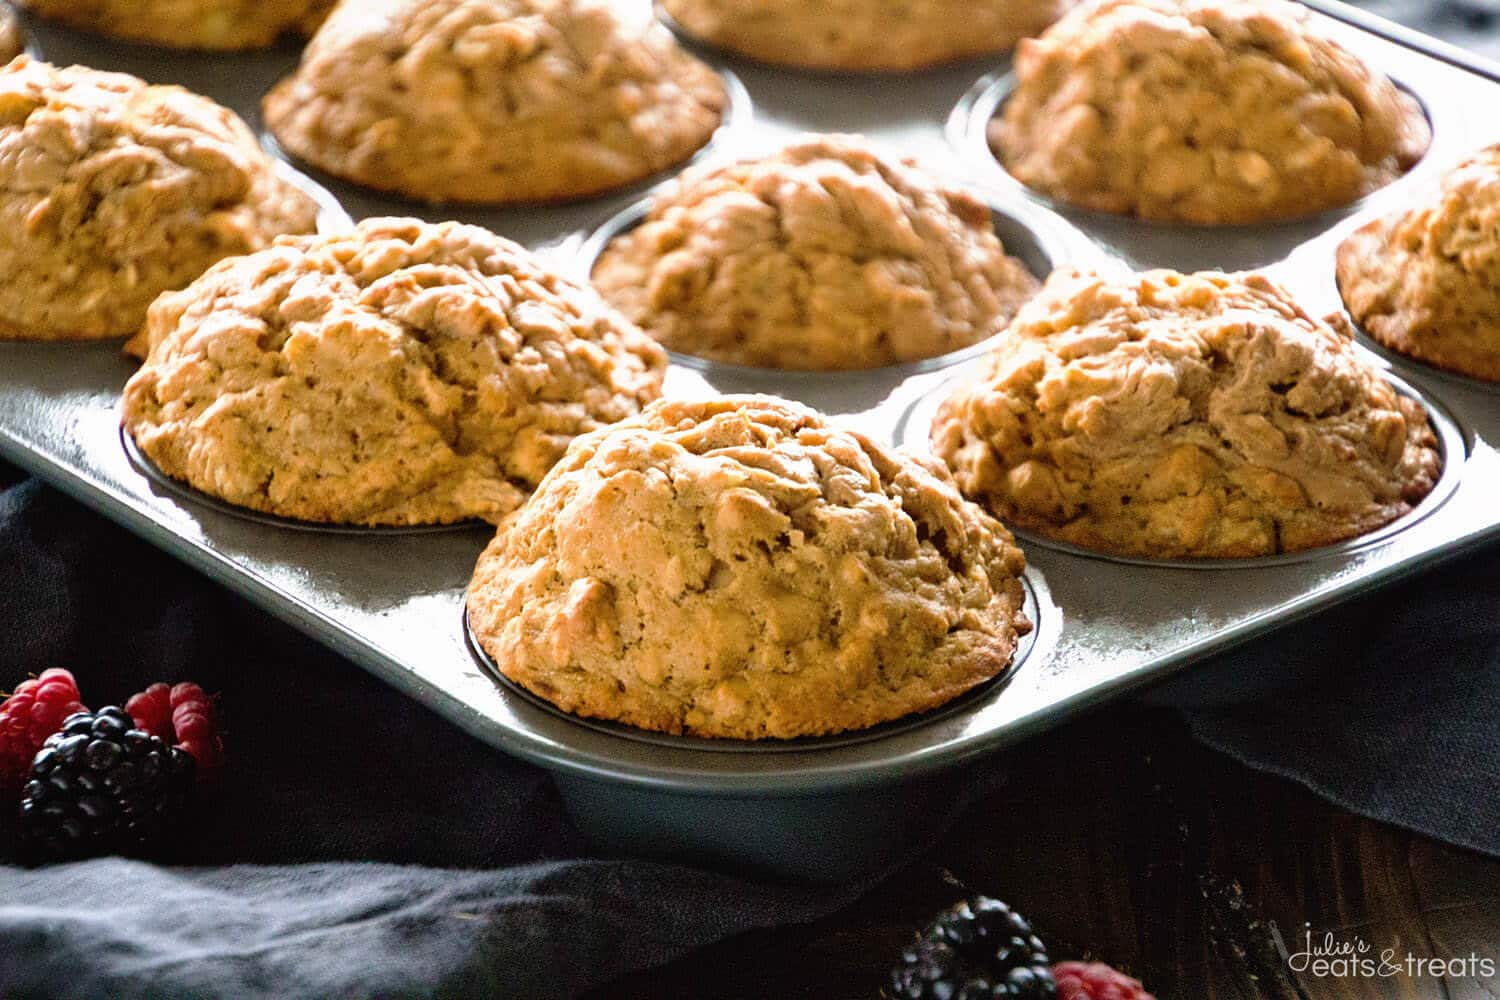 Healthier Peanut Butter Banana Muffins ~ This Peanut Butter and Banana Combo Muffin is so Delicious! They are made with Whole Wheat Flour and Oats to Fill You Up at Breakfast!